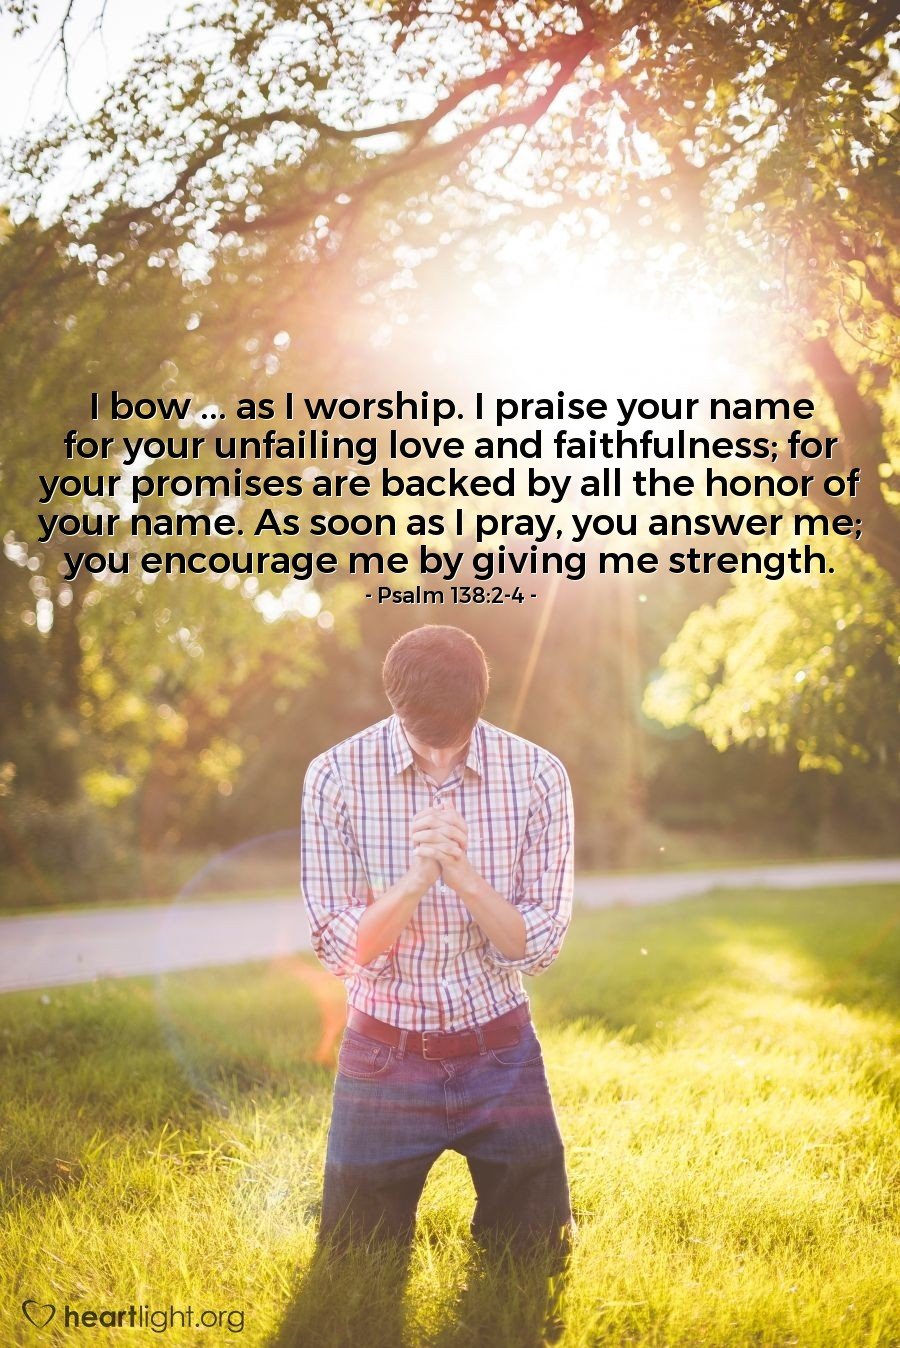 Illustration of Psalm 138:2-4 — I bow ... as I worship. I praise your name for your unfailing love and faithfulness; for your promises are backed by all the honor of your name. As soon as I pray, you answer me; you encourage me by giving me strength.